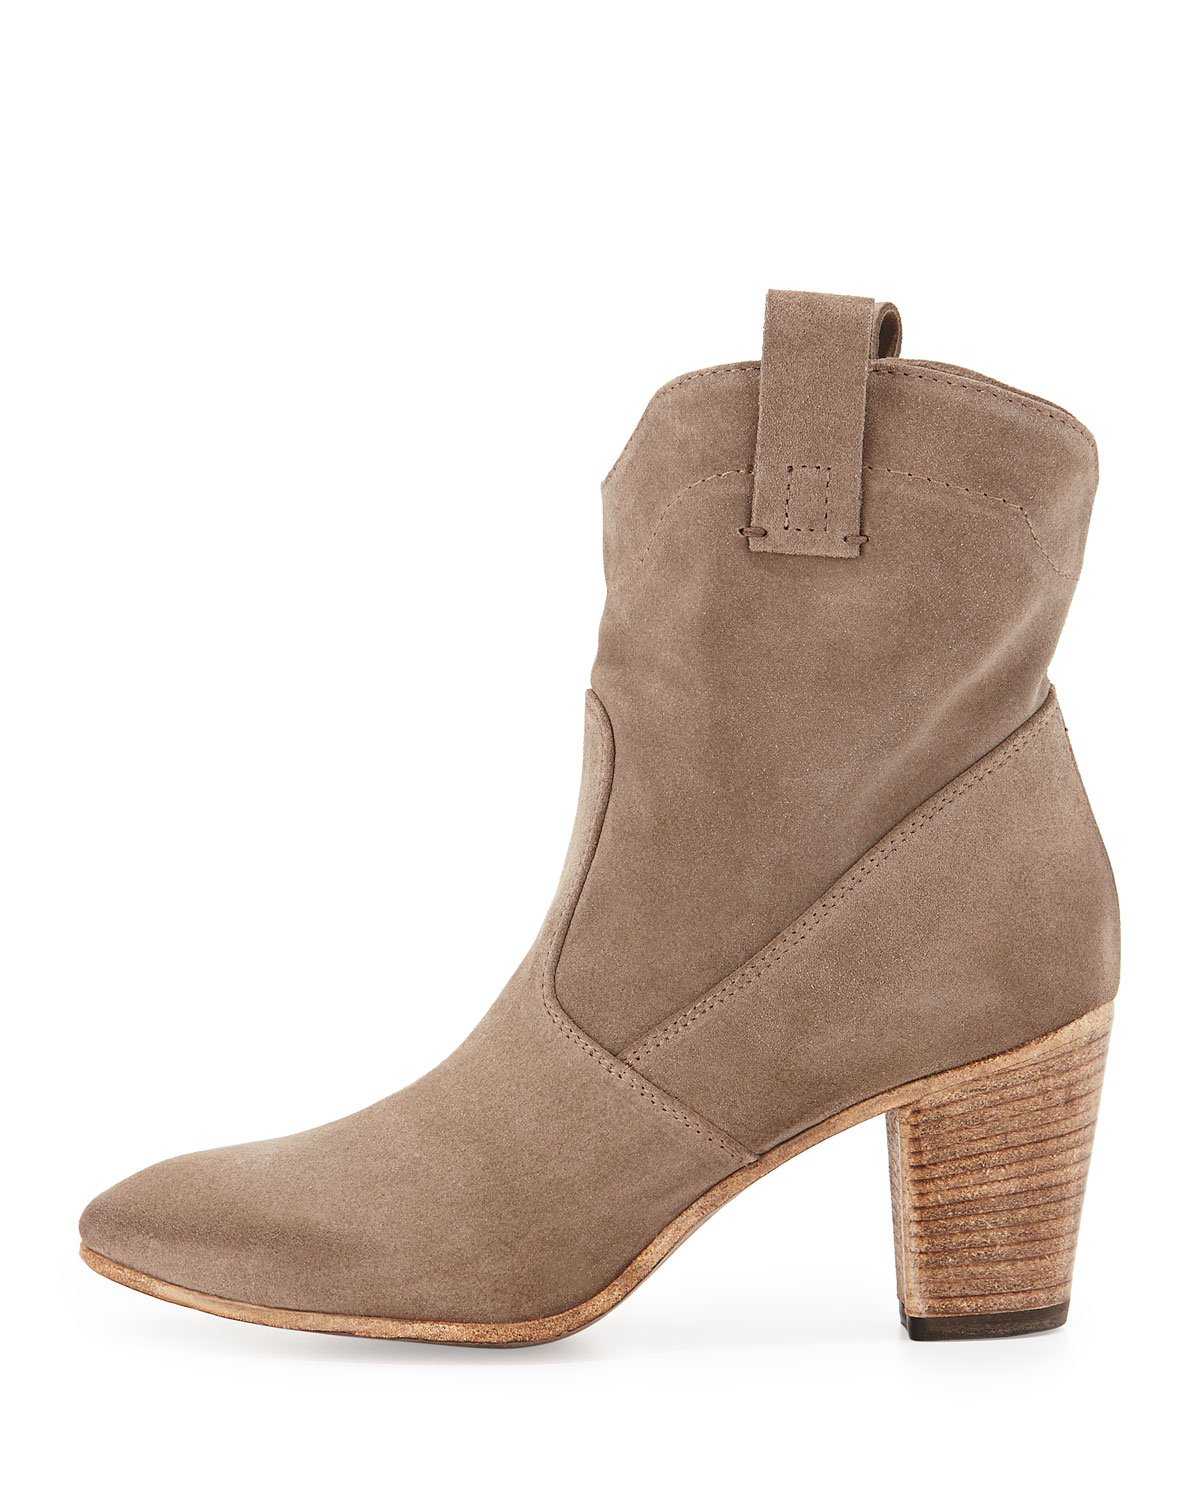 5e279cf3cf9 Lyst - Alberto Fermani Chiara Slouchy Suede Ankle Boot in Natural